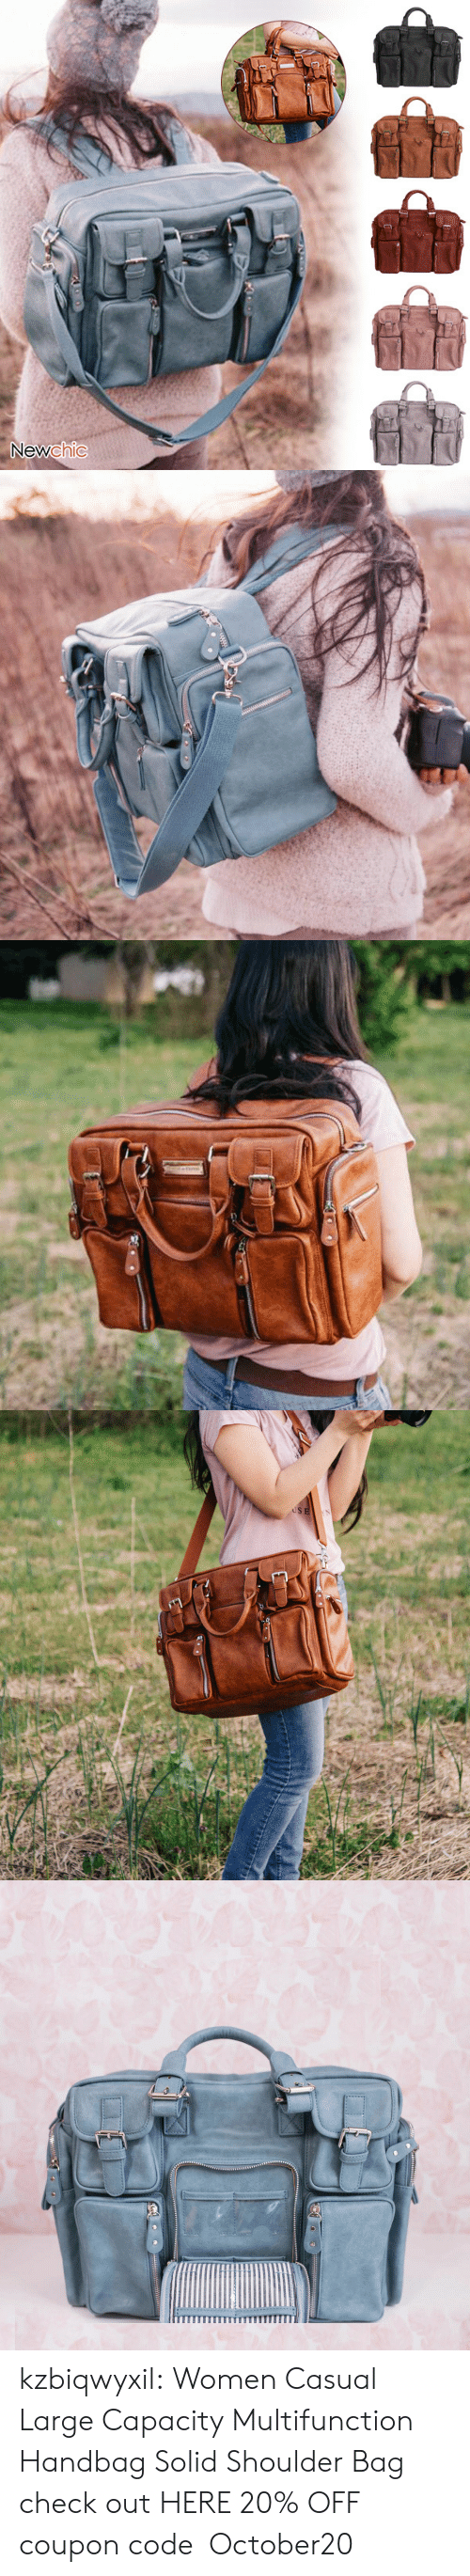 Tumblr, Blog, and Women: Newchic   USE kzbiqwyxil: Women Casual Large Capacity Multifunction Handbag Solid Shoulder Bag check out HERE 20% OFF coupon code:October20